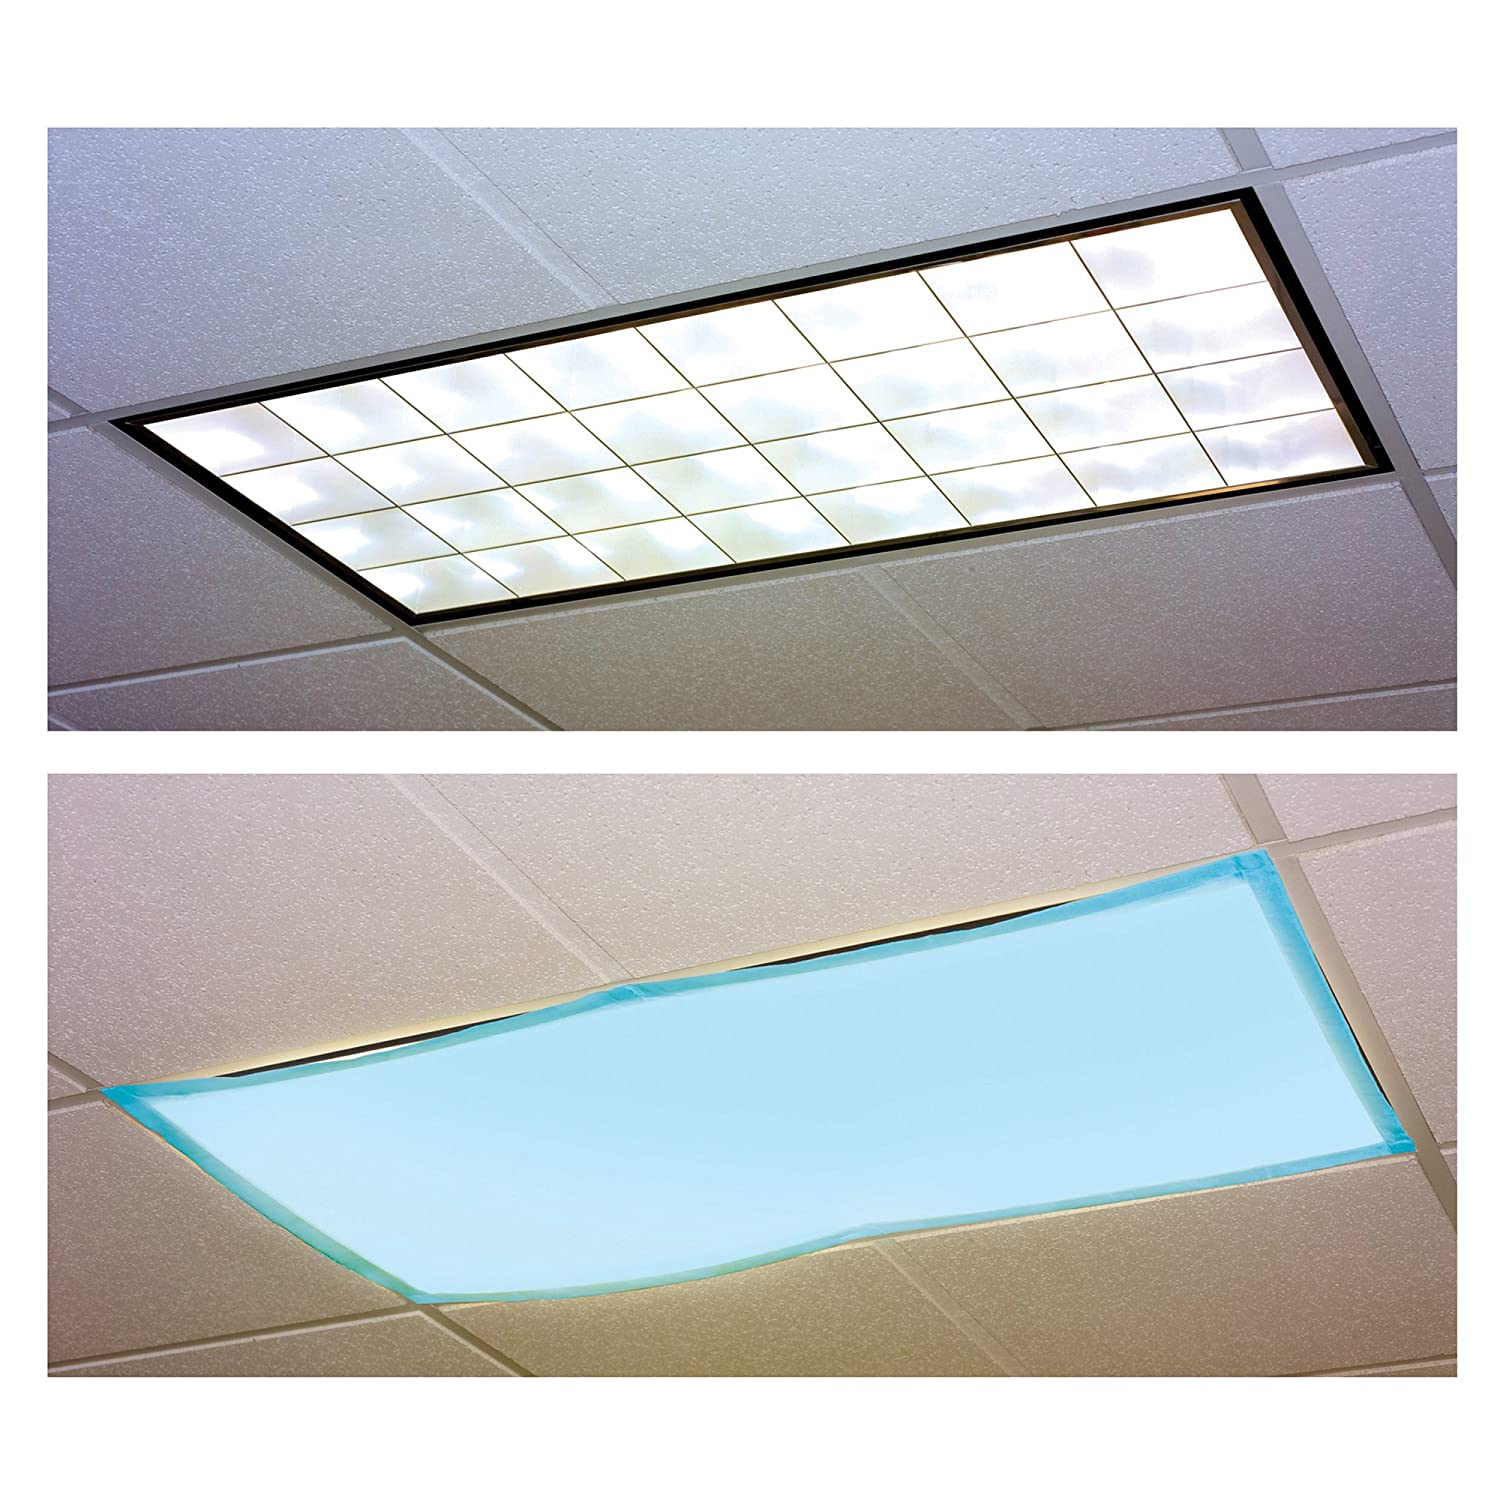 fluorescent light filters set of 4 classroom autism